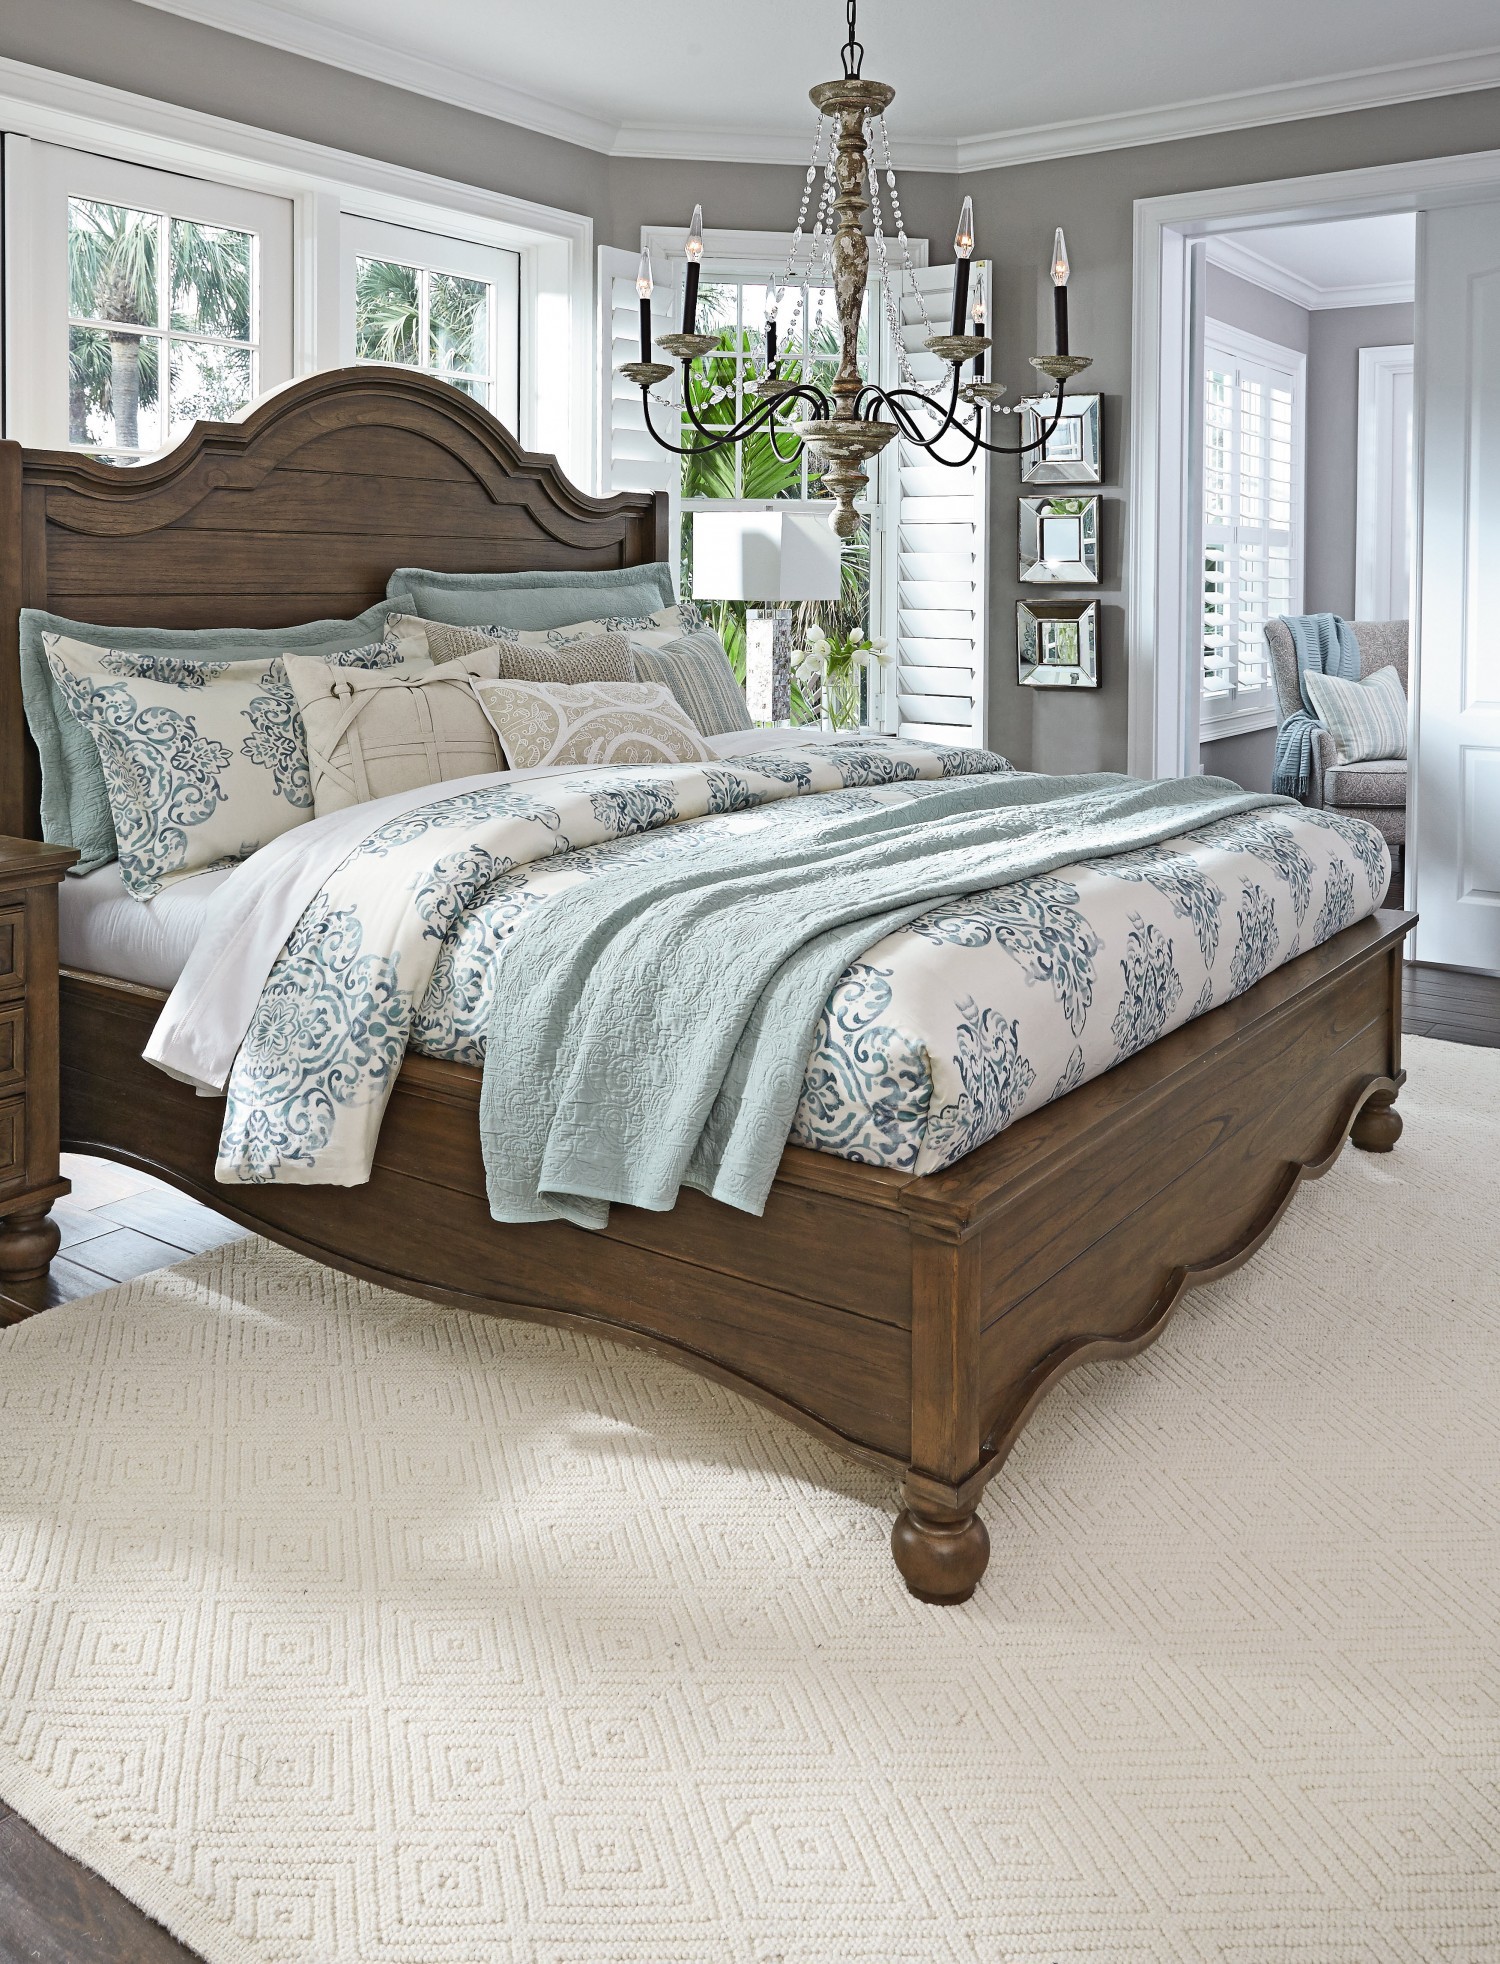 Ashley Furniture Clearance Sales 70 Off Spring Awakening Freshen The Bed In A Beautiful Way